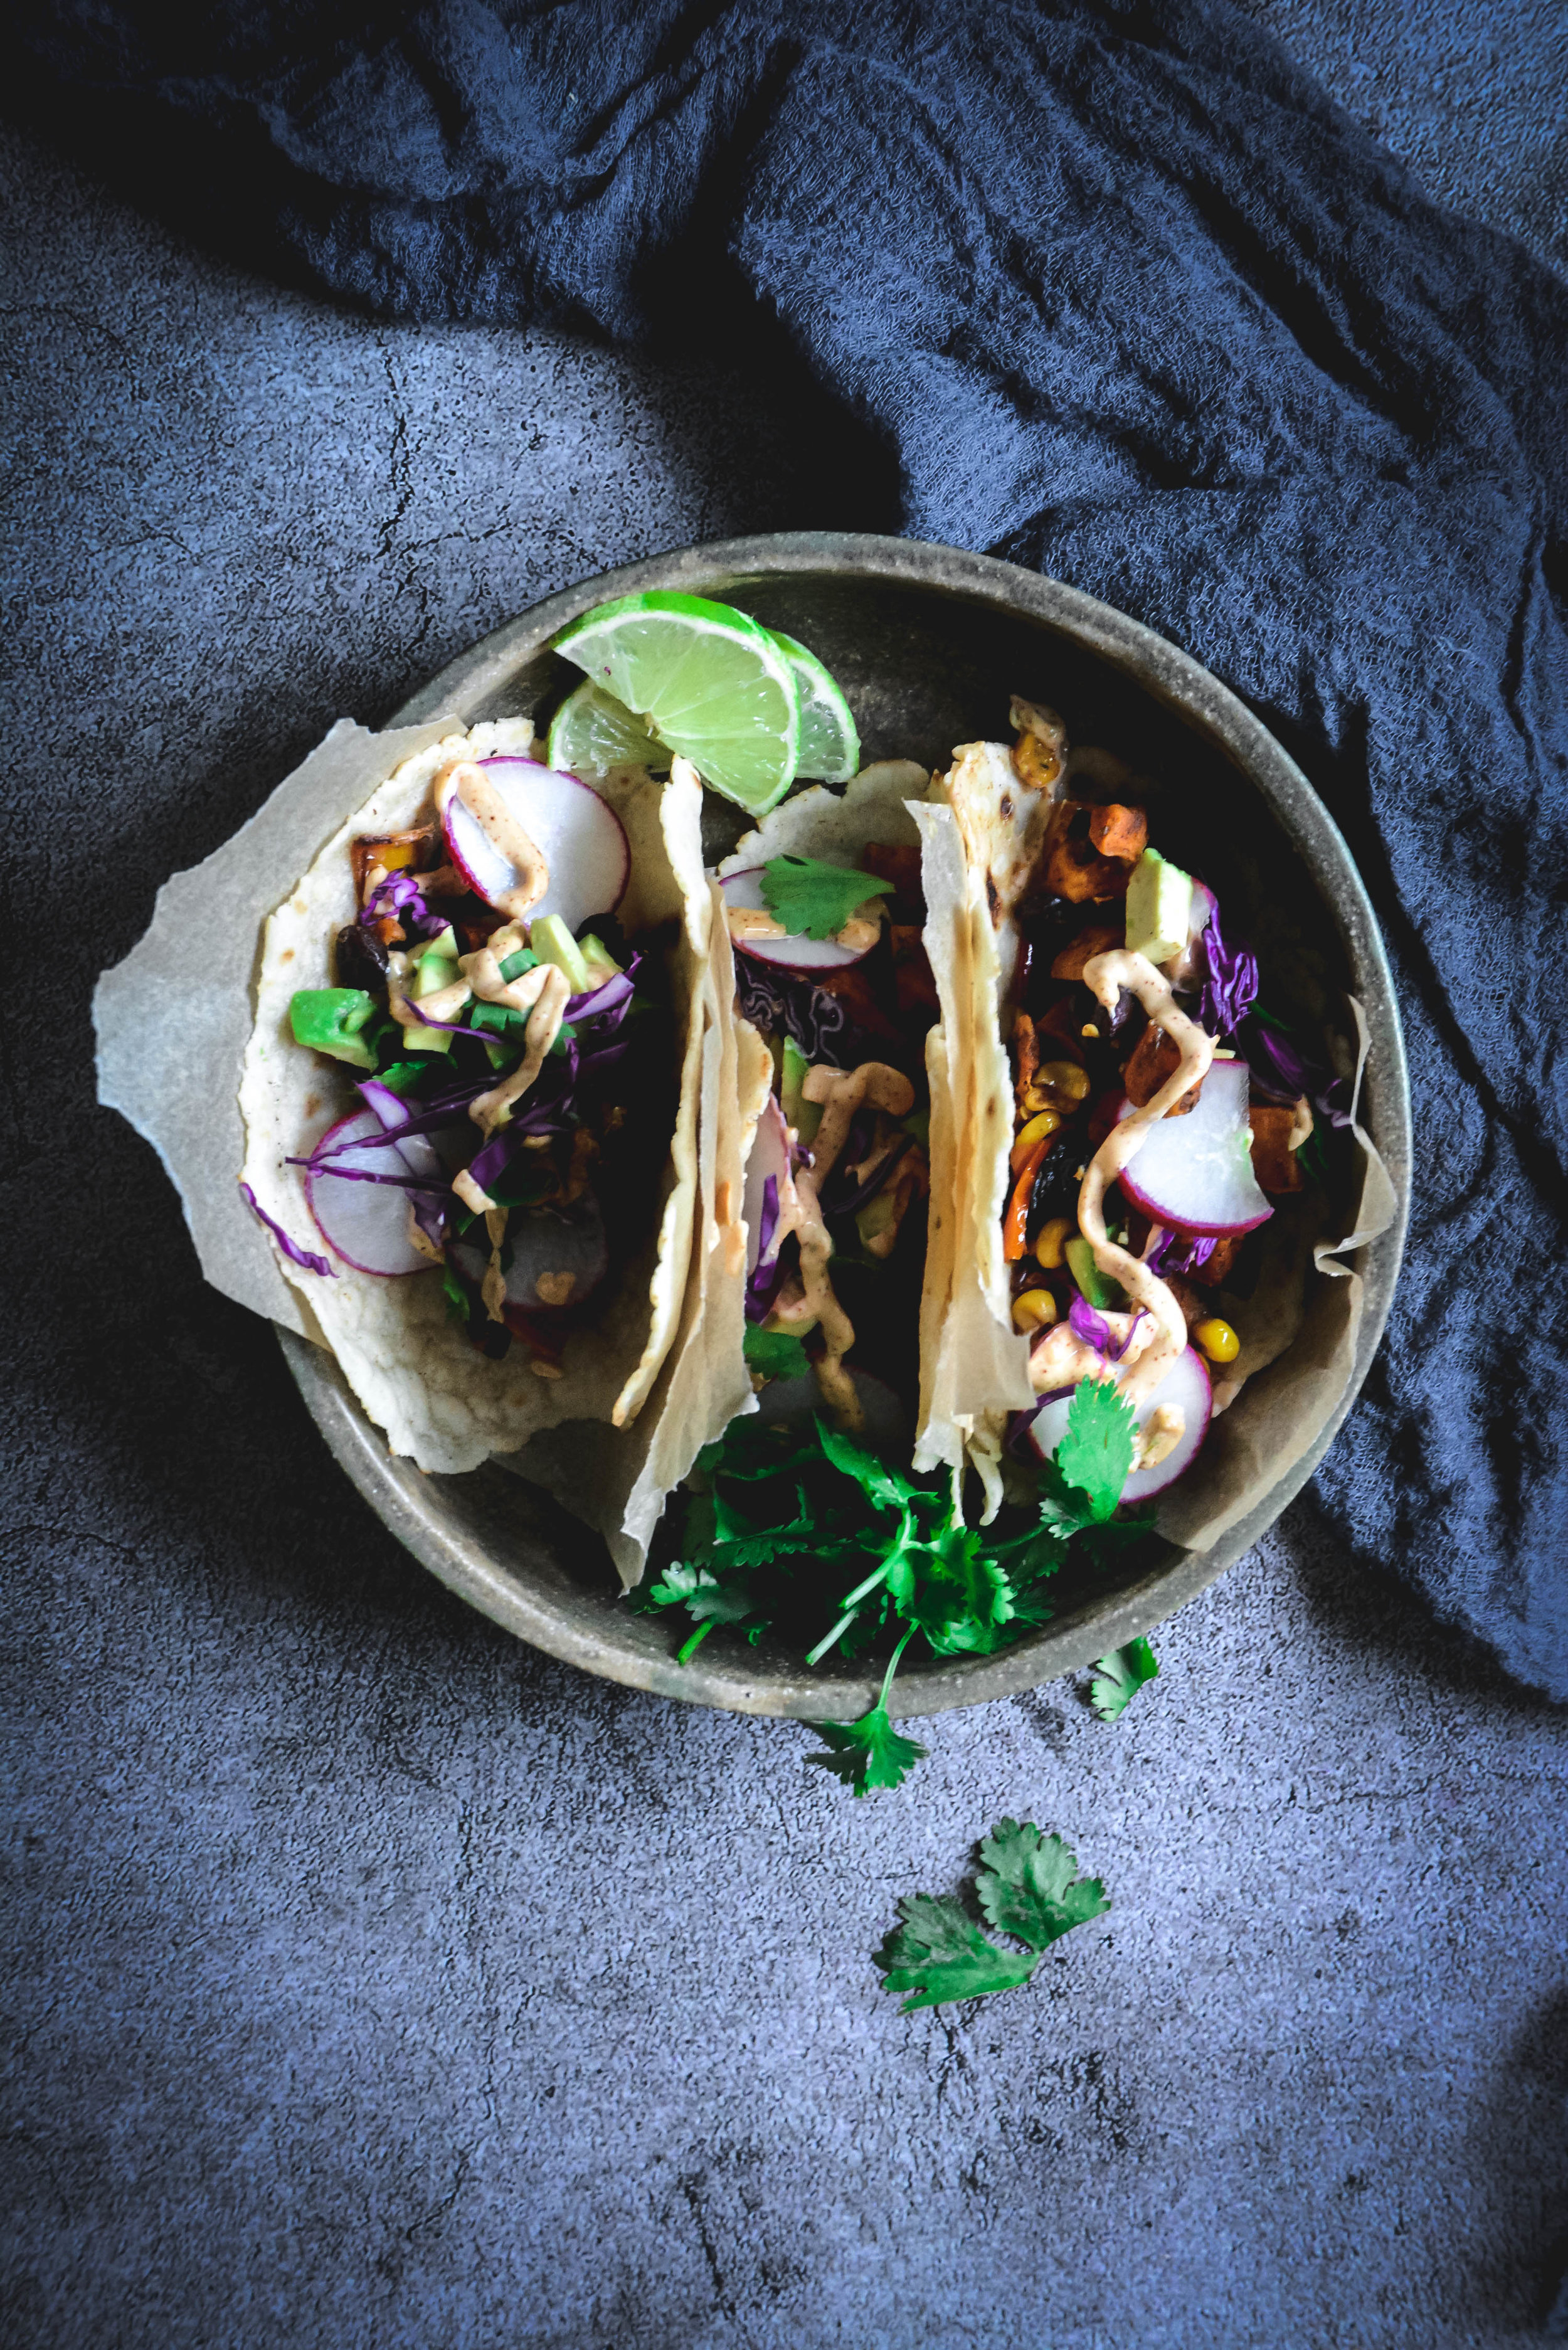 If you're looking for a delicious dinner you can whip up in 30 minutes, try these roasted vegetable vegan tacos. The great thing is they can be customized for whole 30 and paleo lifestyles, are completely vegan . #tacos #paleotacos #whole30tacos #vegantacos #vegan #vegetarian #roastedvegetables #calmeats #veganmexicanfood #dinner #healthyrecipes